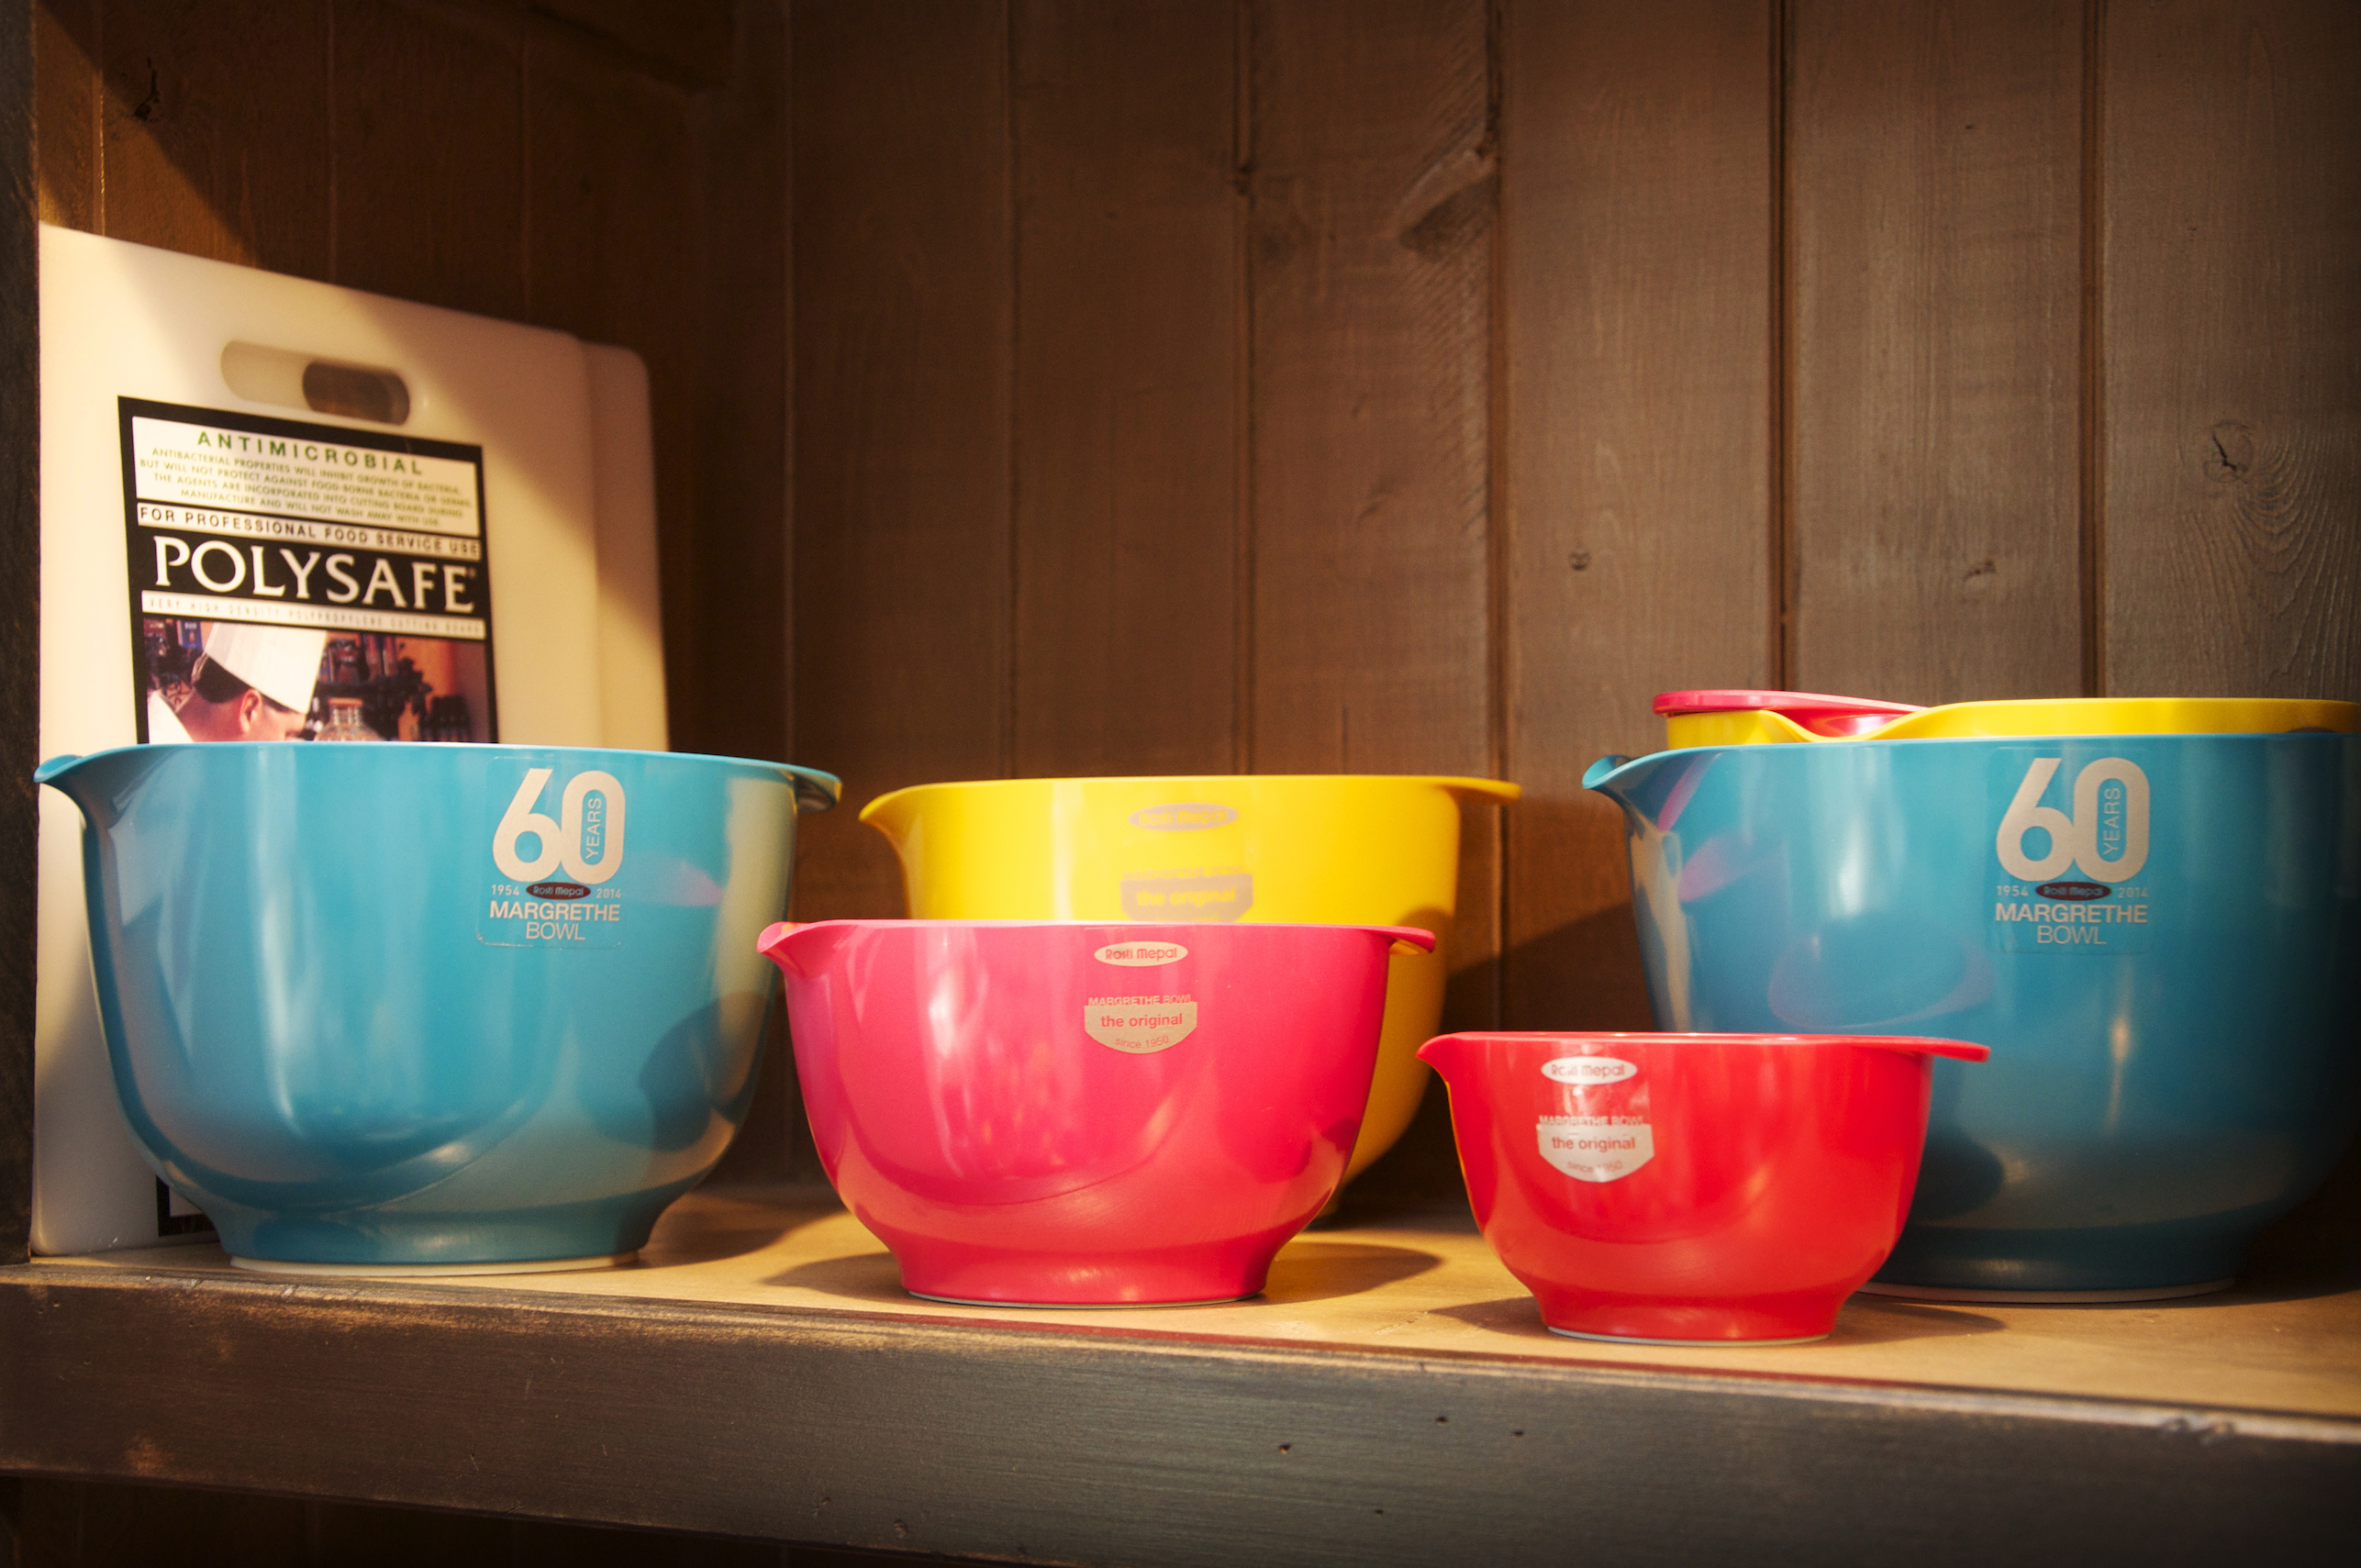 Measuring Bowls